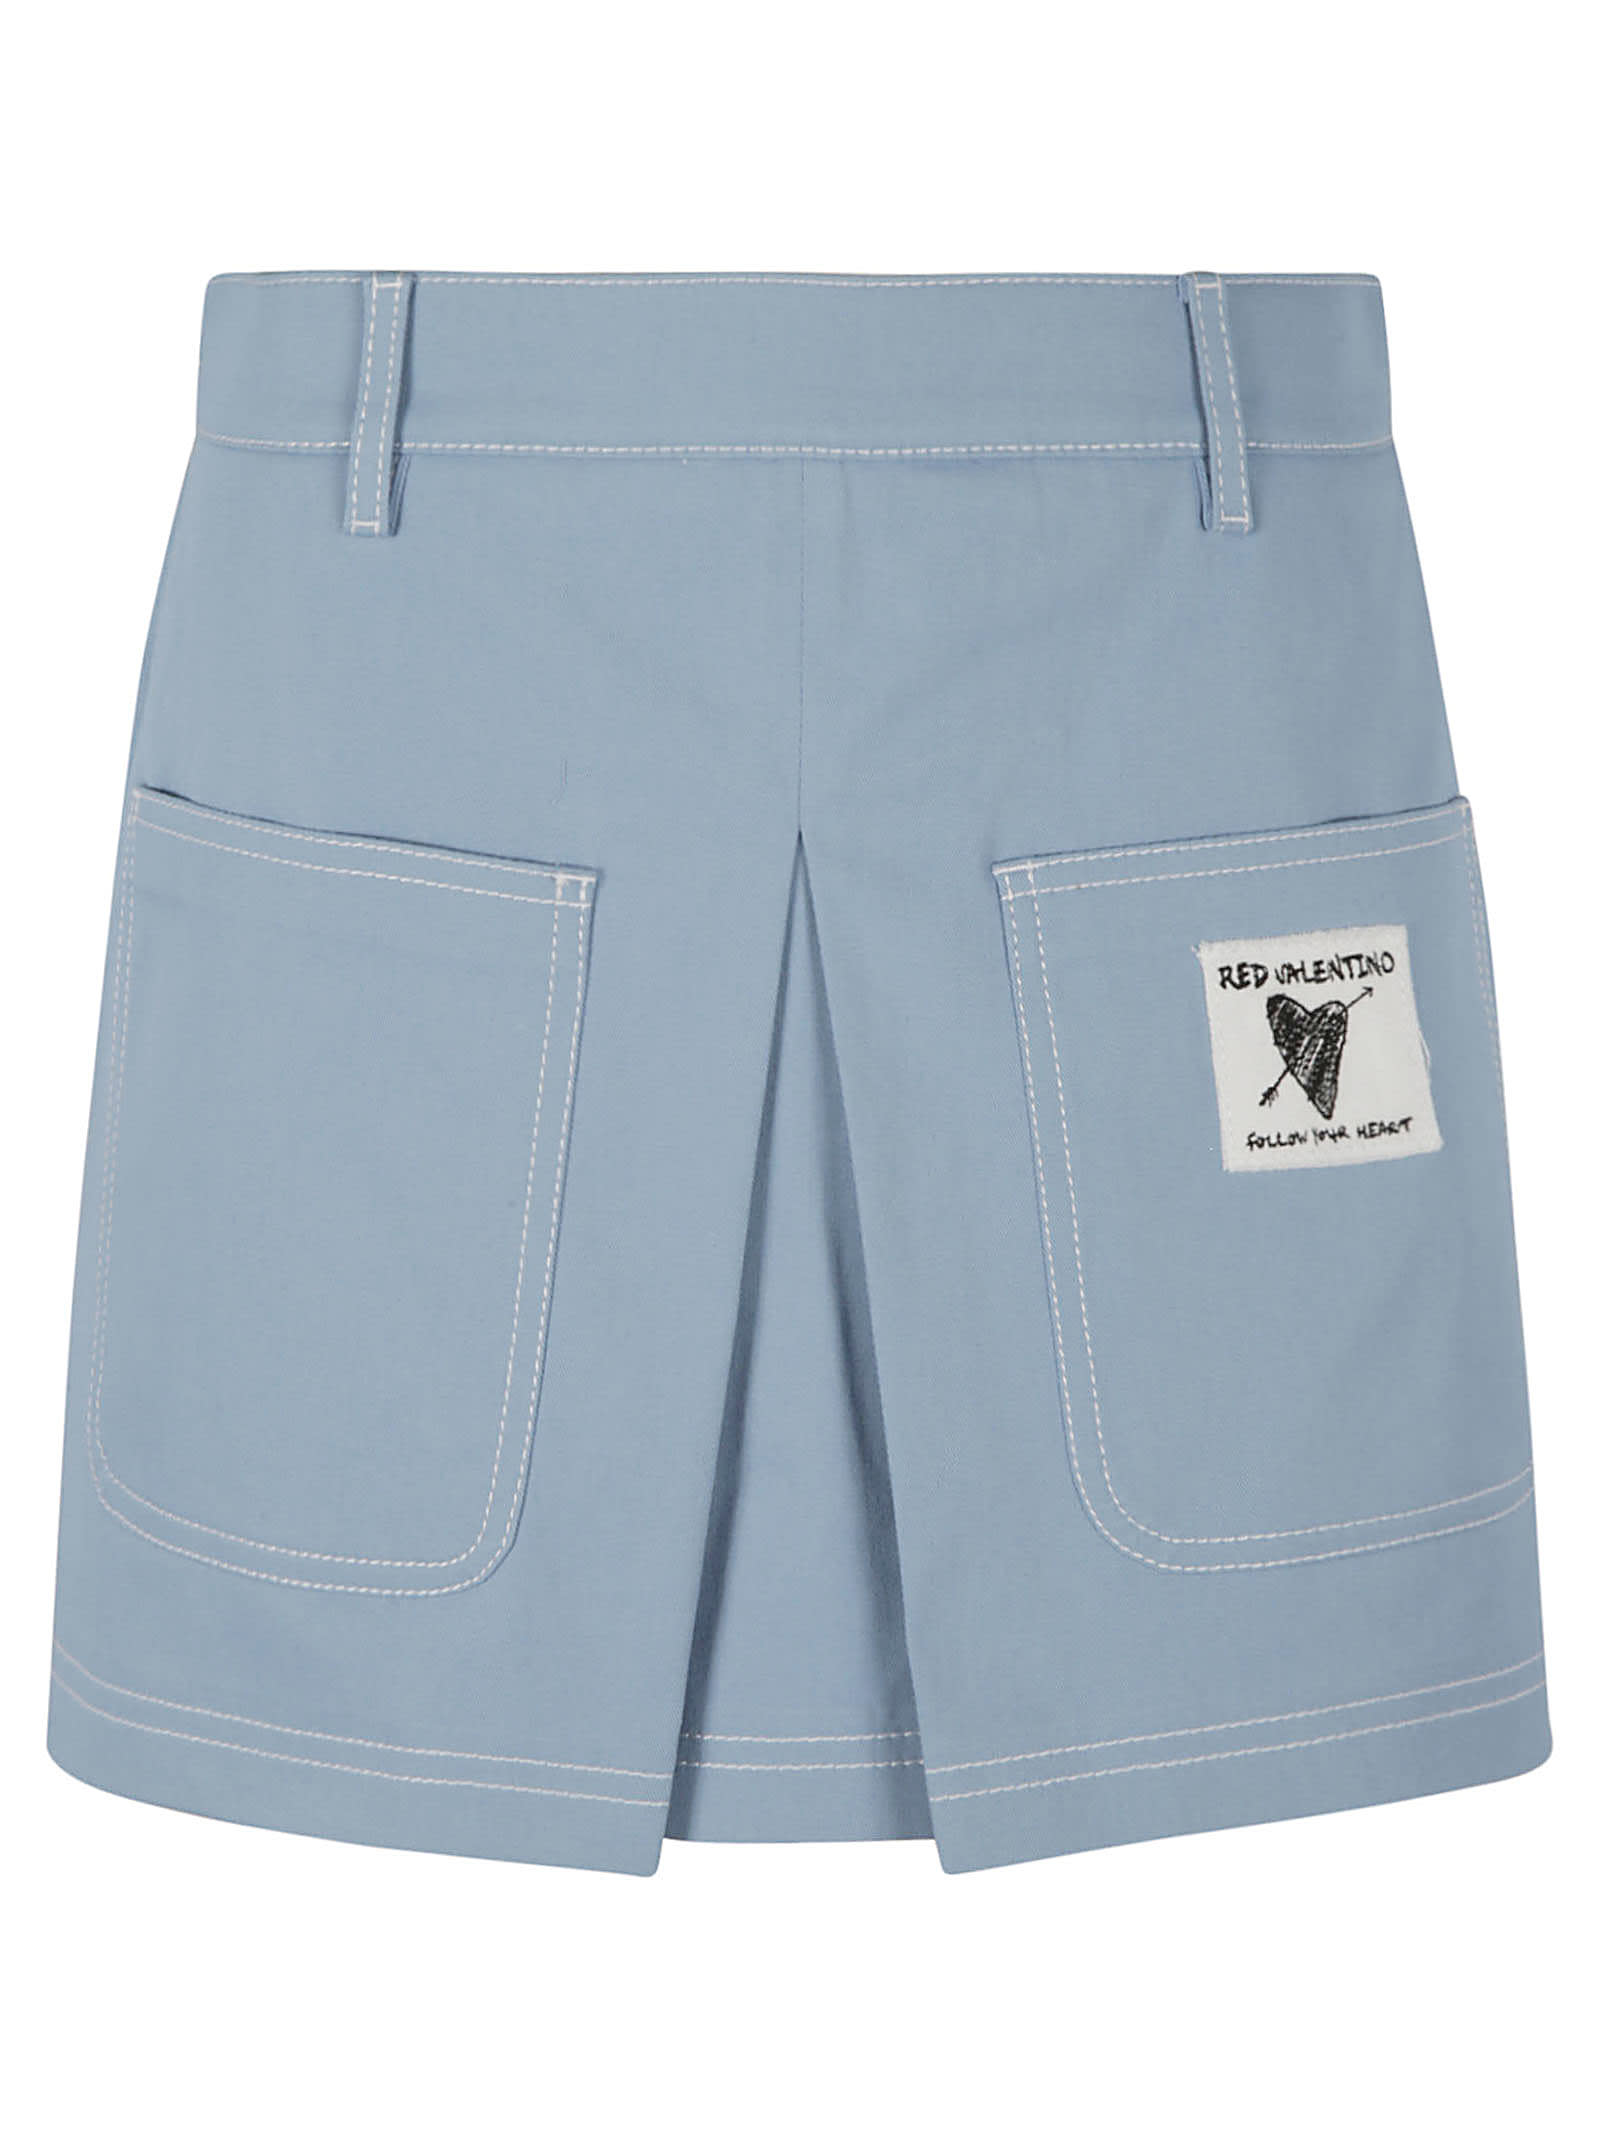 RED Valentino Front Pocket Logo Patched Shorts